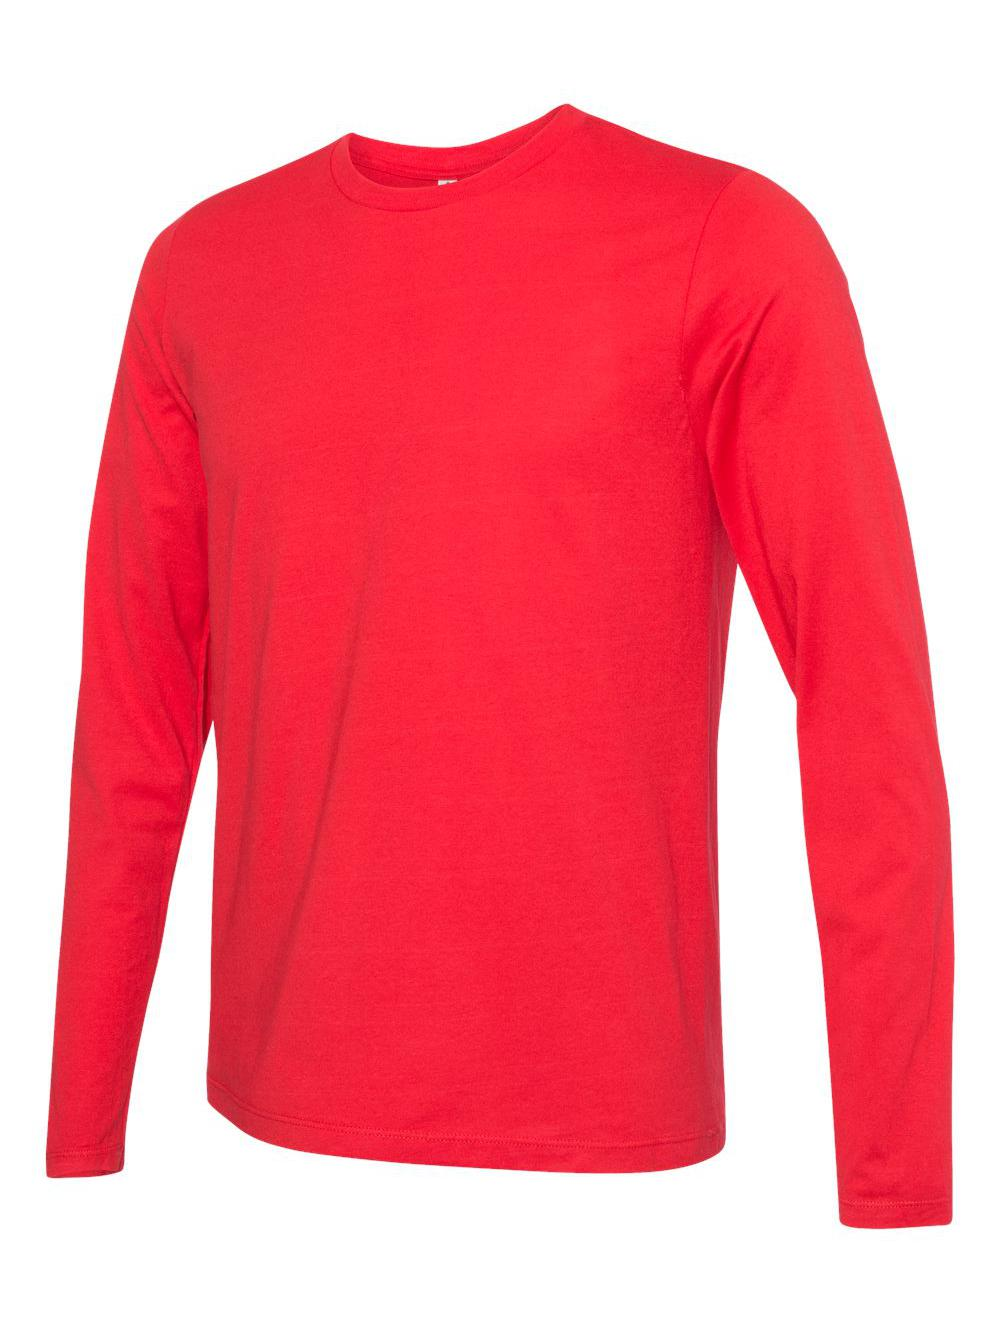 ALSTYLE-Ultimate-Long-Sleeve-T-Shirt-5304 thumbnail 15